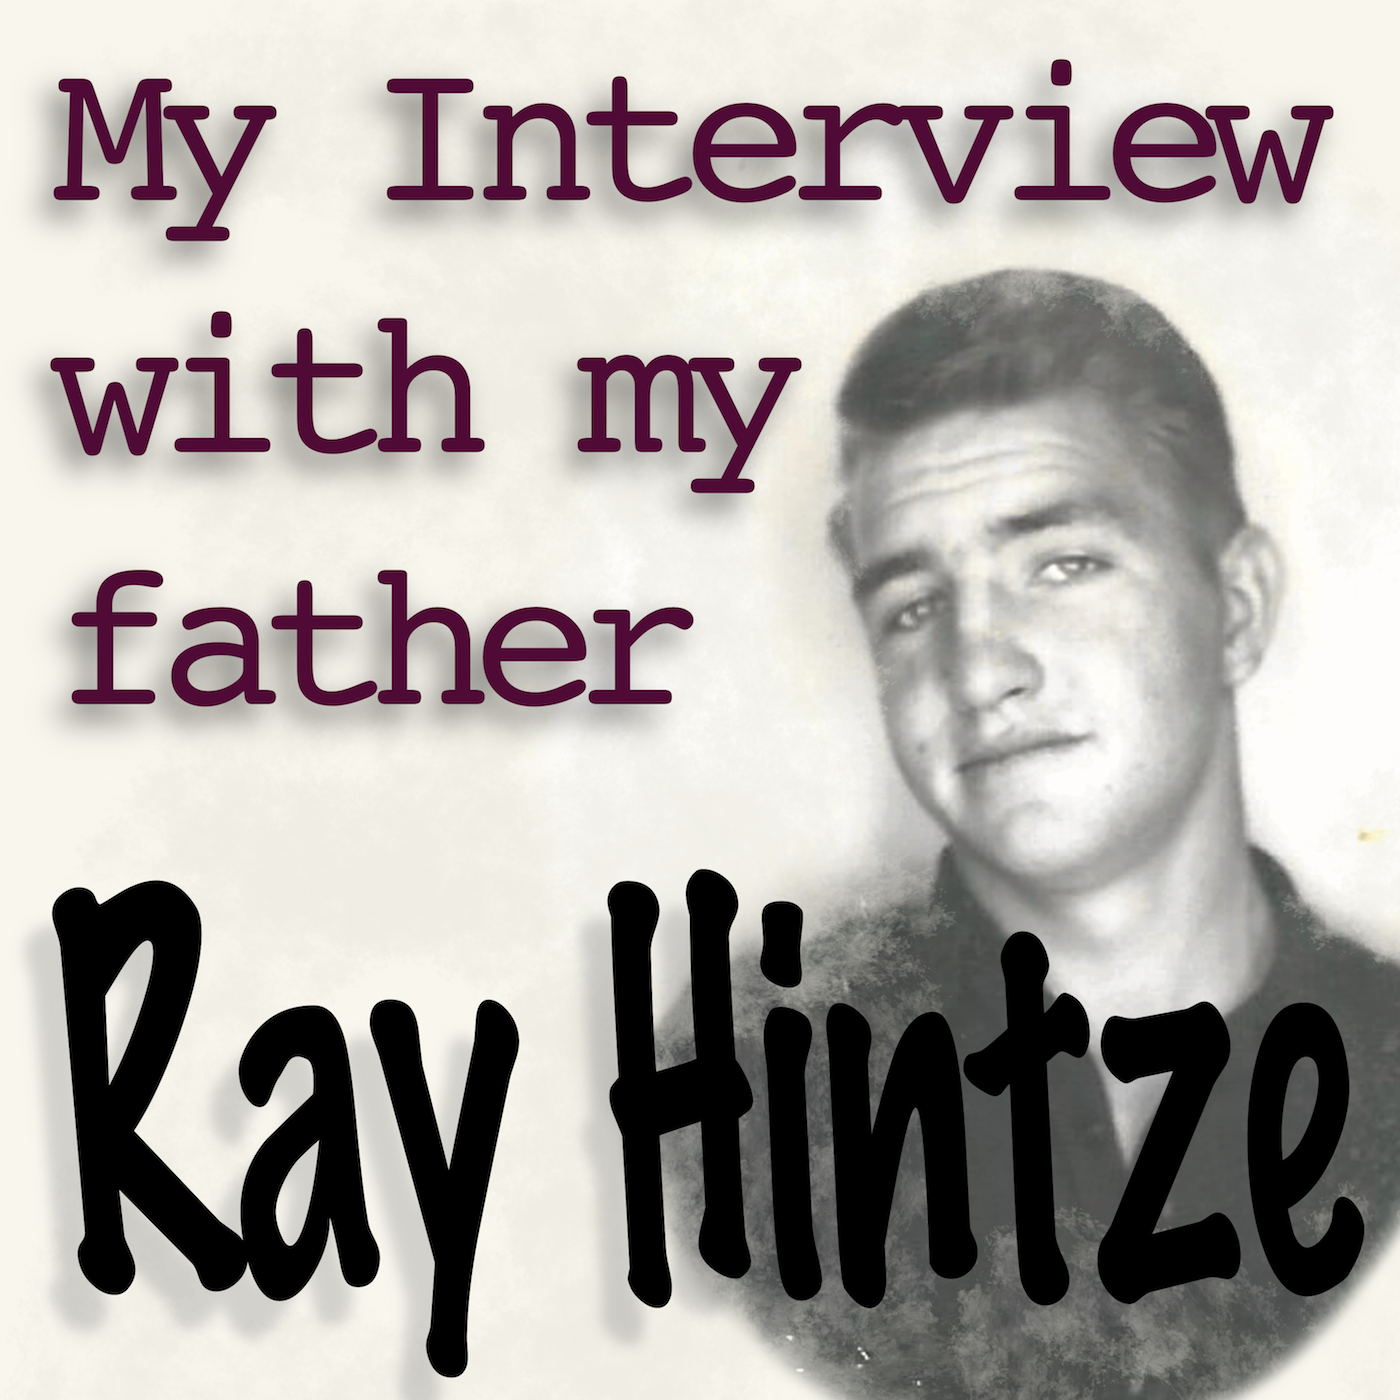 My Interview with My Father: Ray Hintze